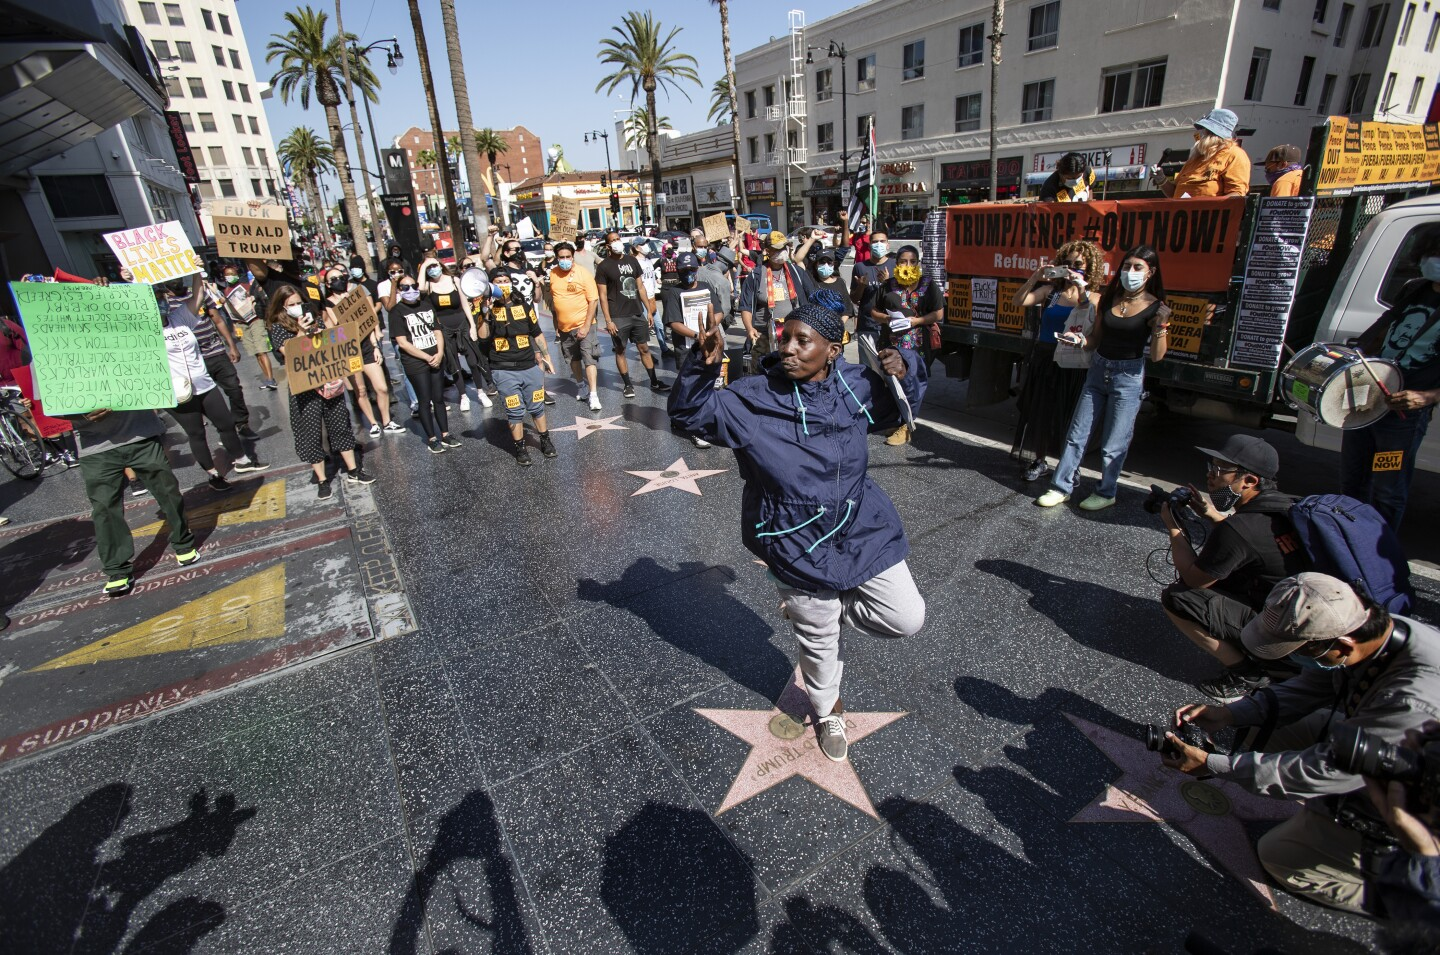 A protester dances on top of Donald Trump's star on the Hollywood Walk of Fame during a demonstration in June.